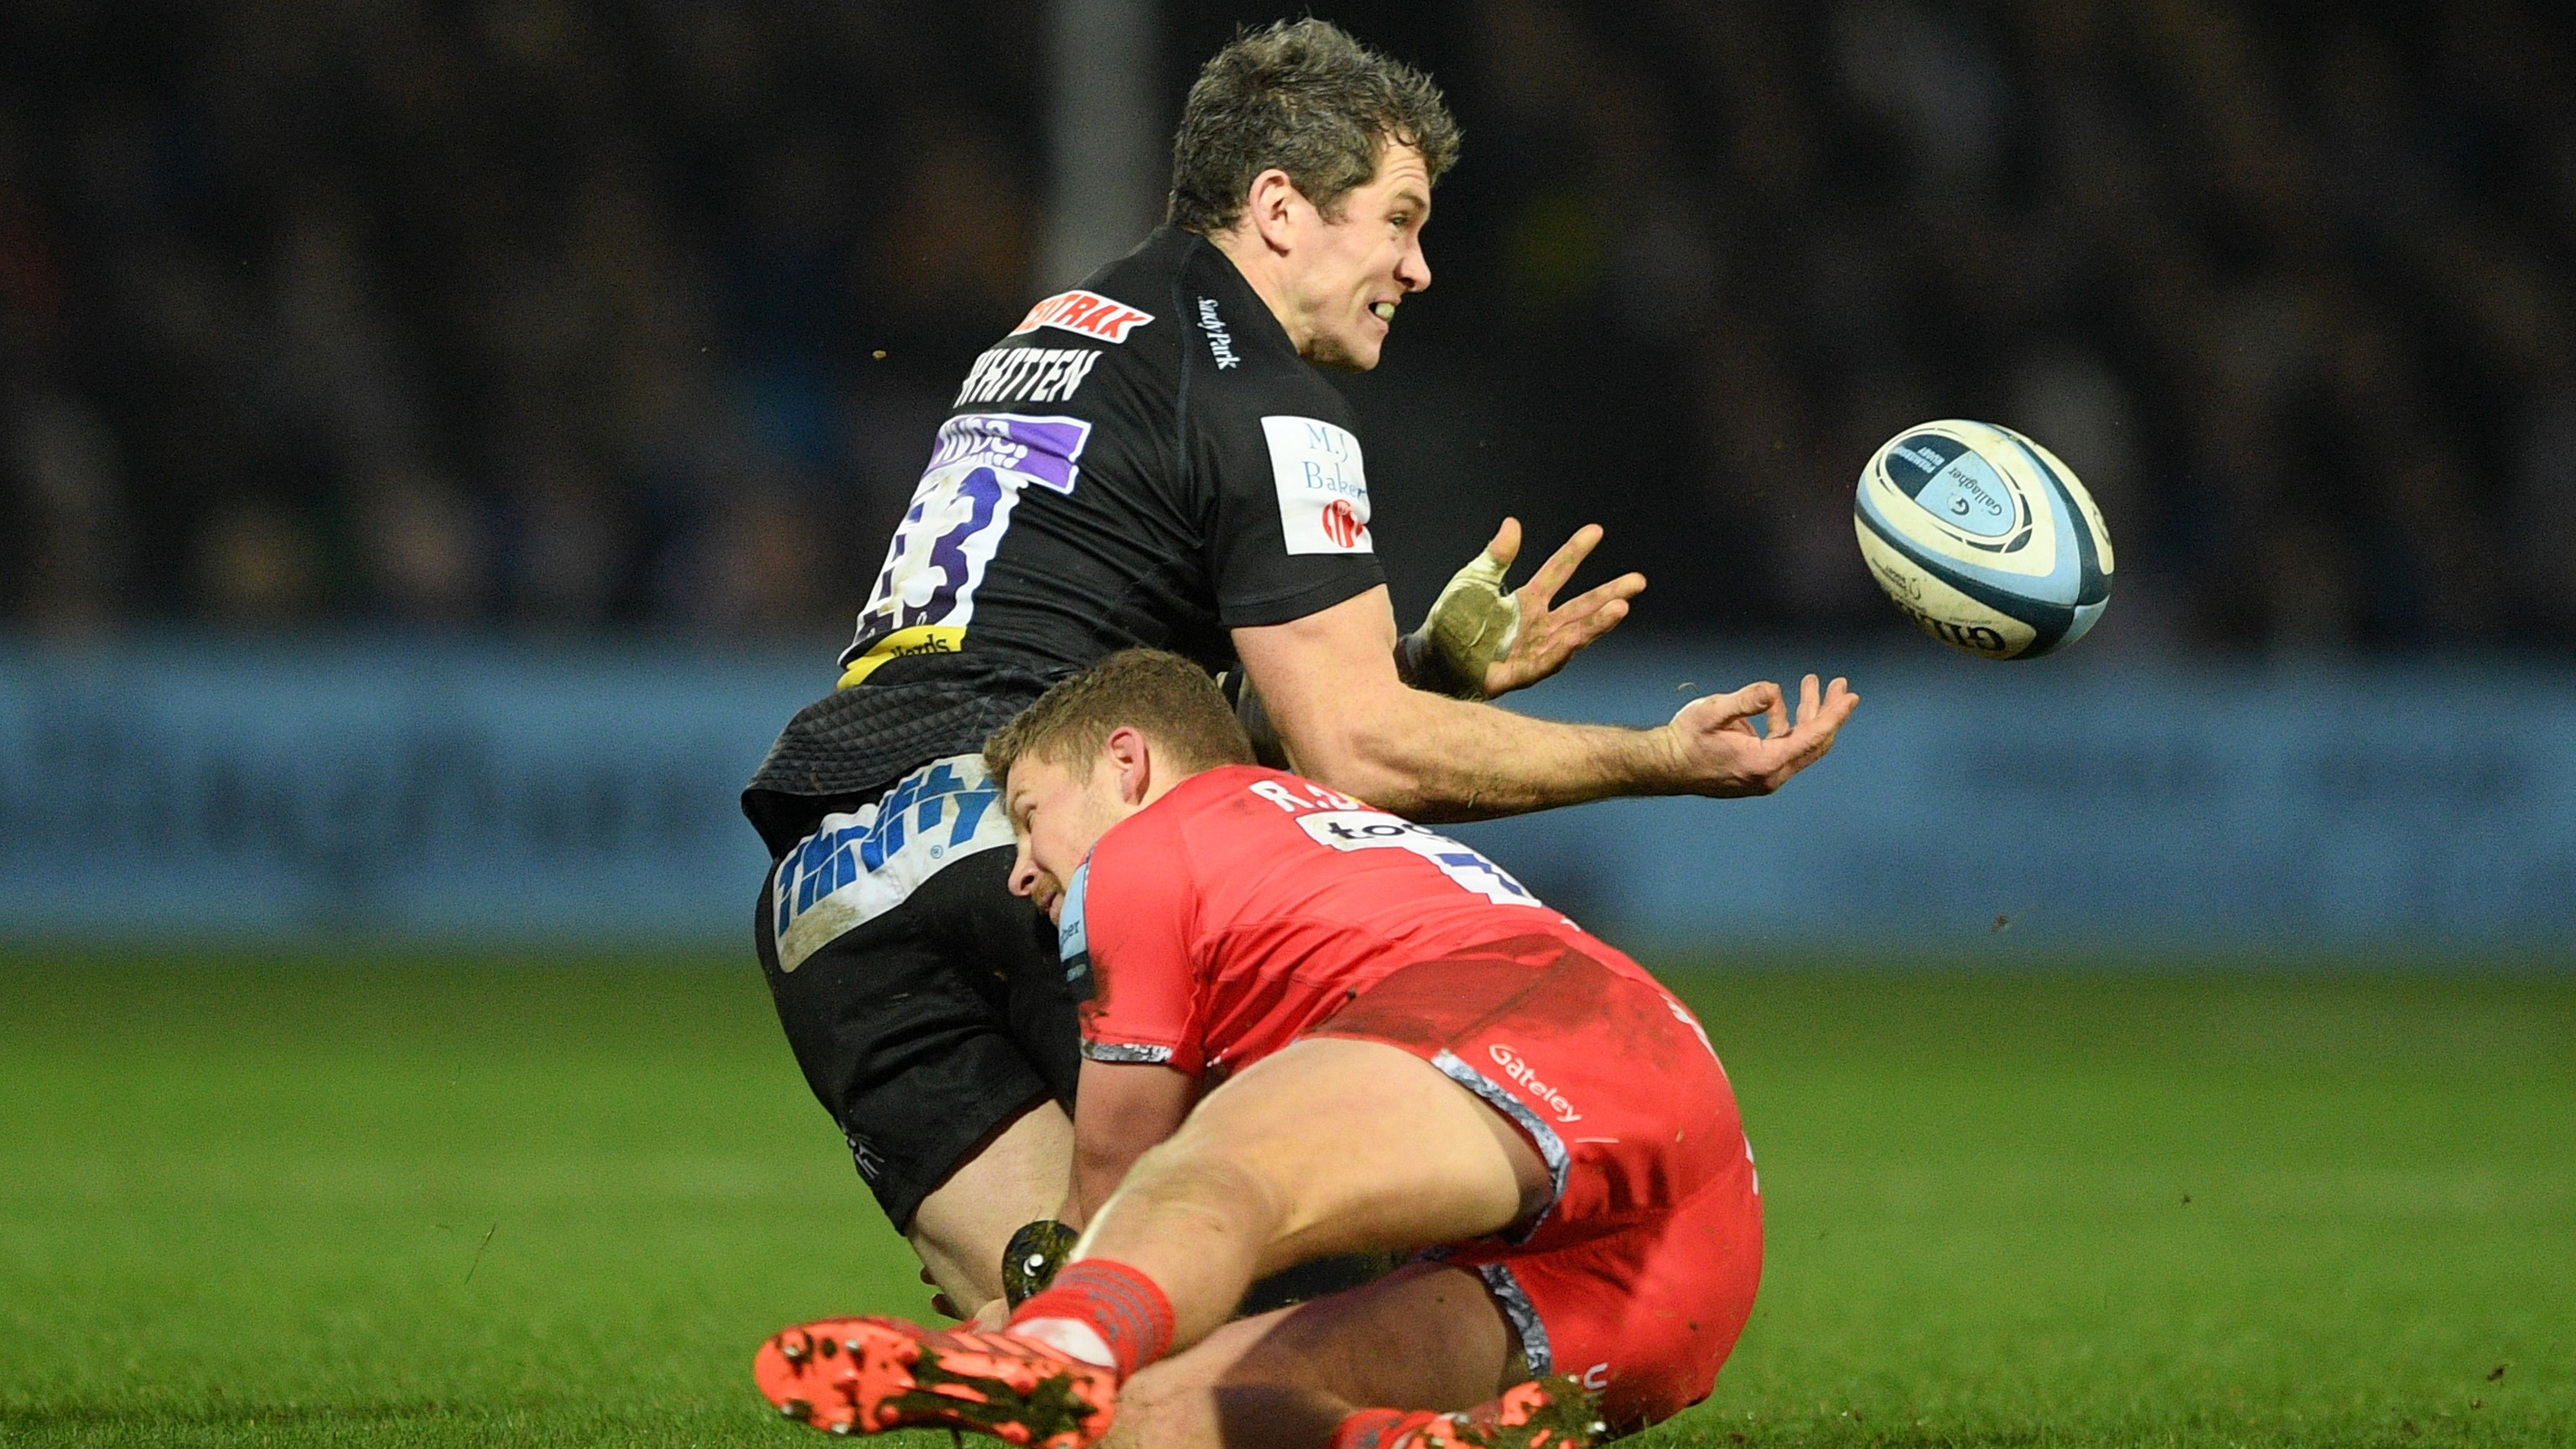 Sale vs Exeter live stream: how to watch 2020 Premiership rugby from anywhere today thumbnail